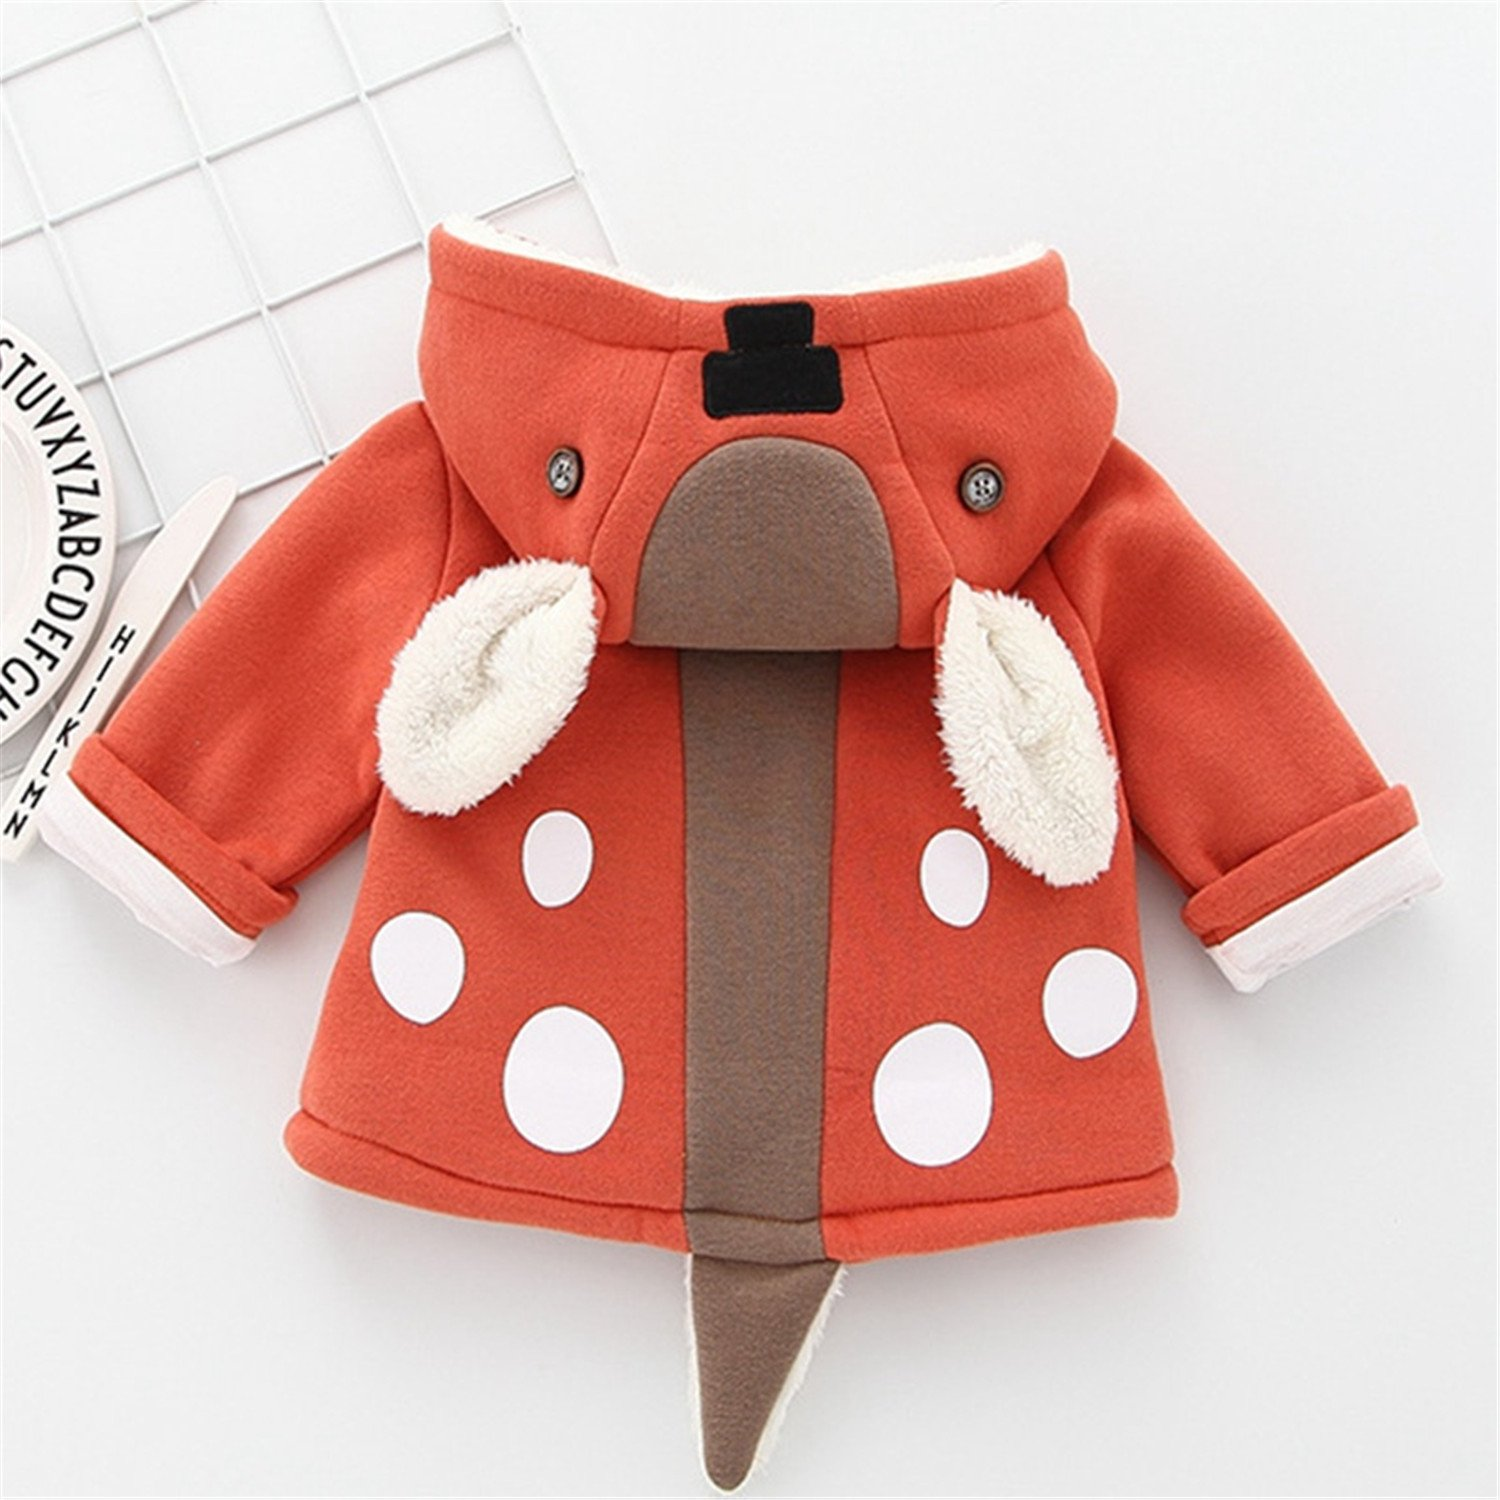 Baqijian Winter Boys Girls Casual Warm Coat Kids Outfits Fleece Sweatshirt Kids Hooded Coats Animal Style Outerwears